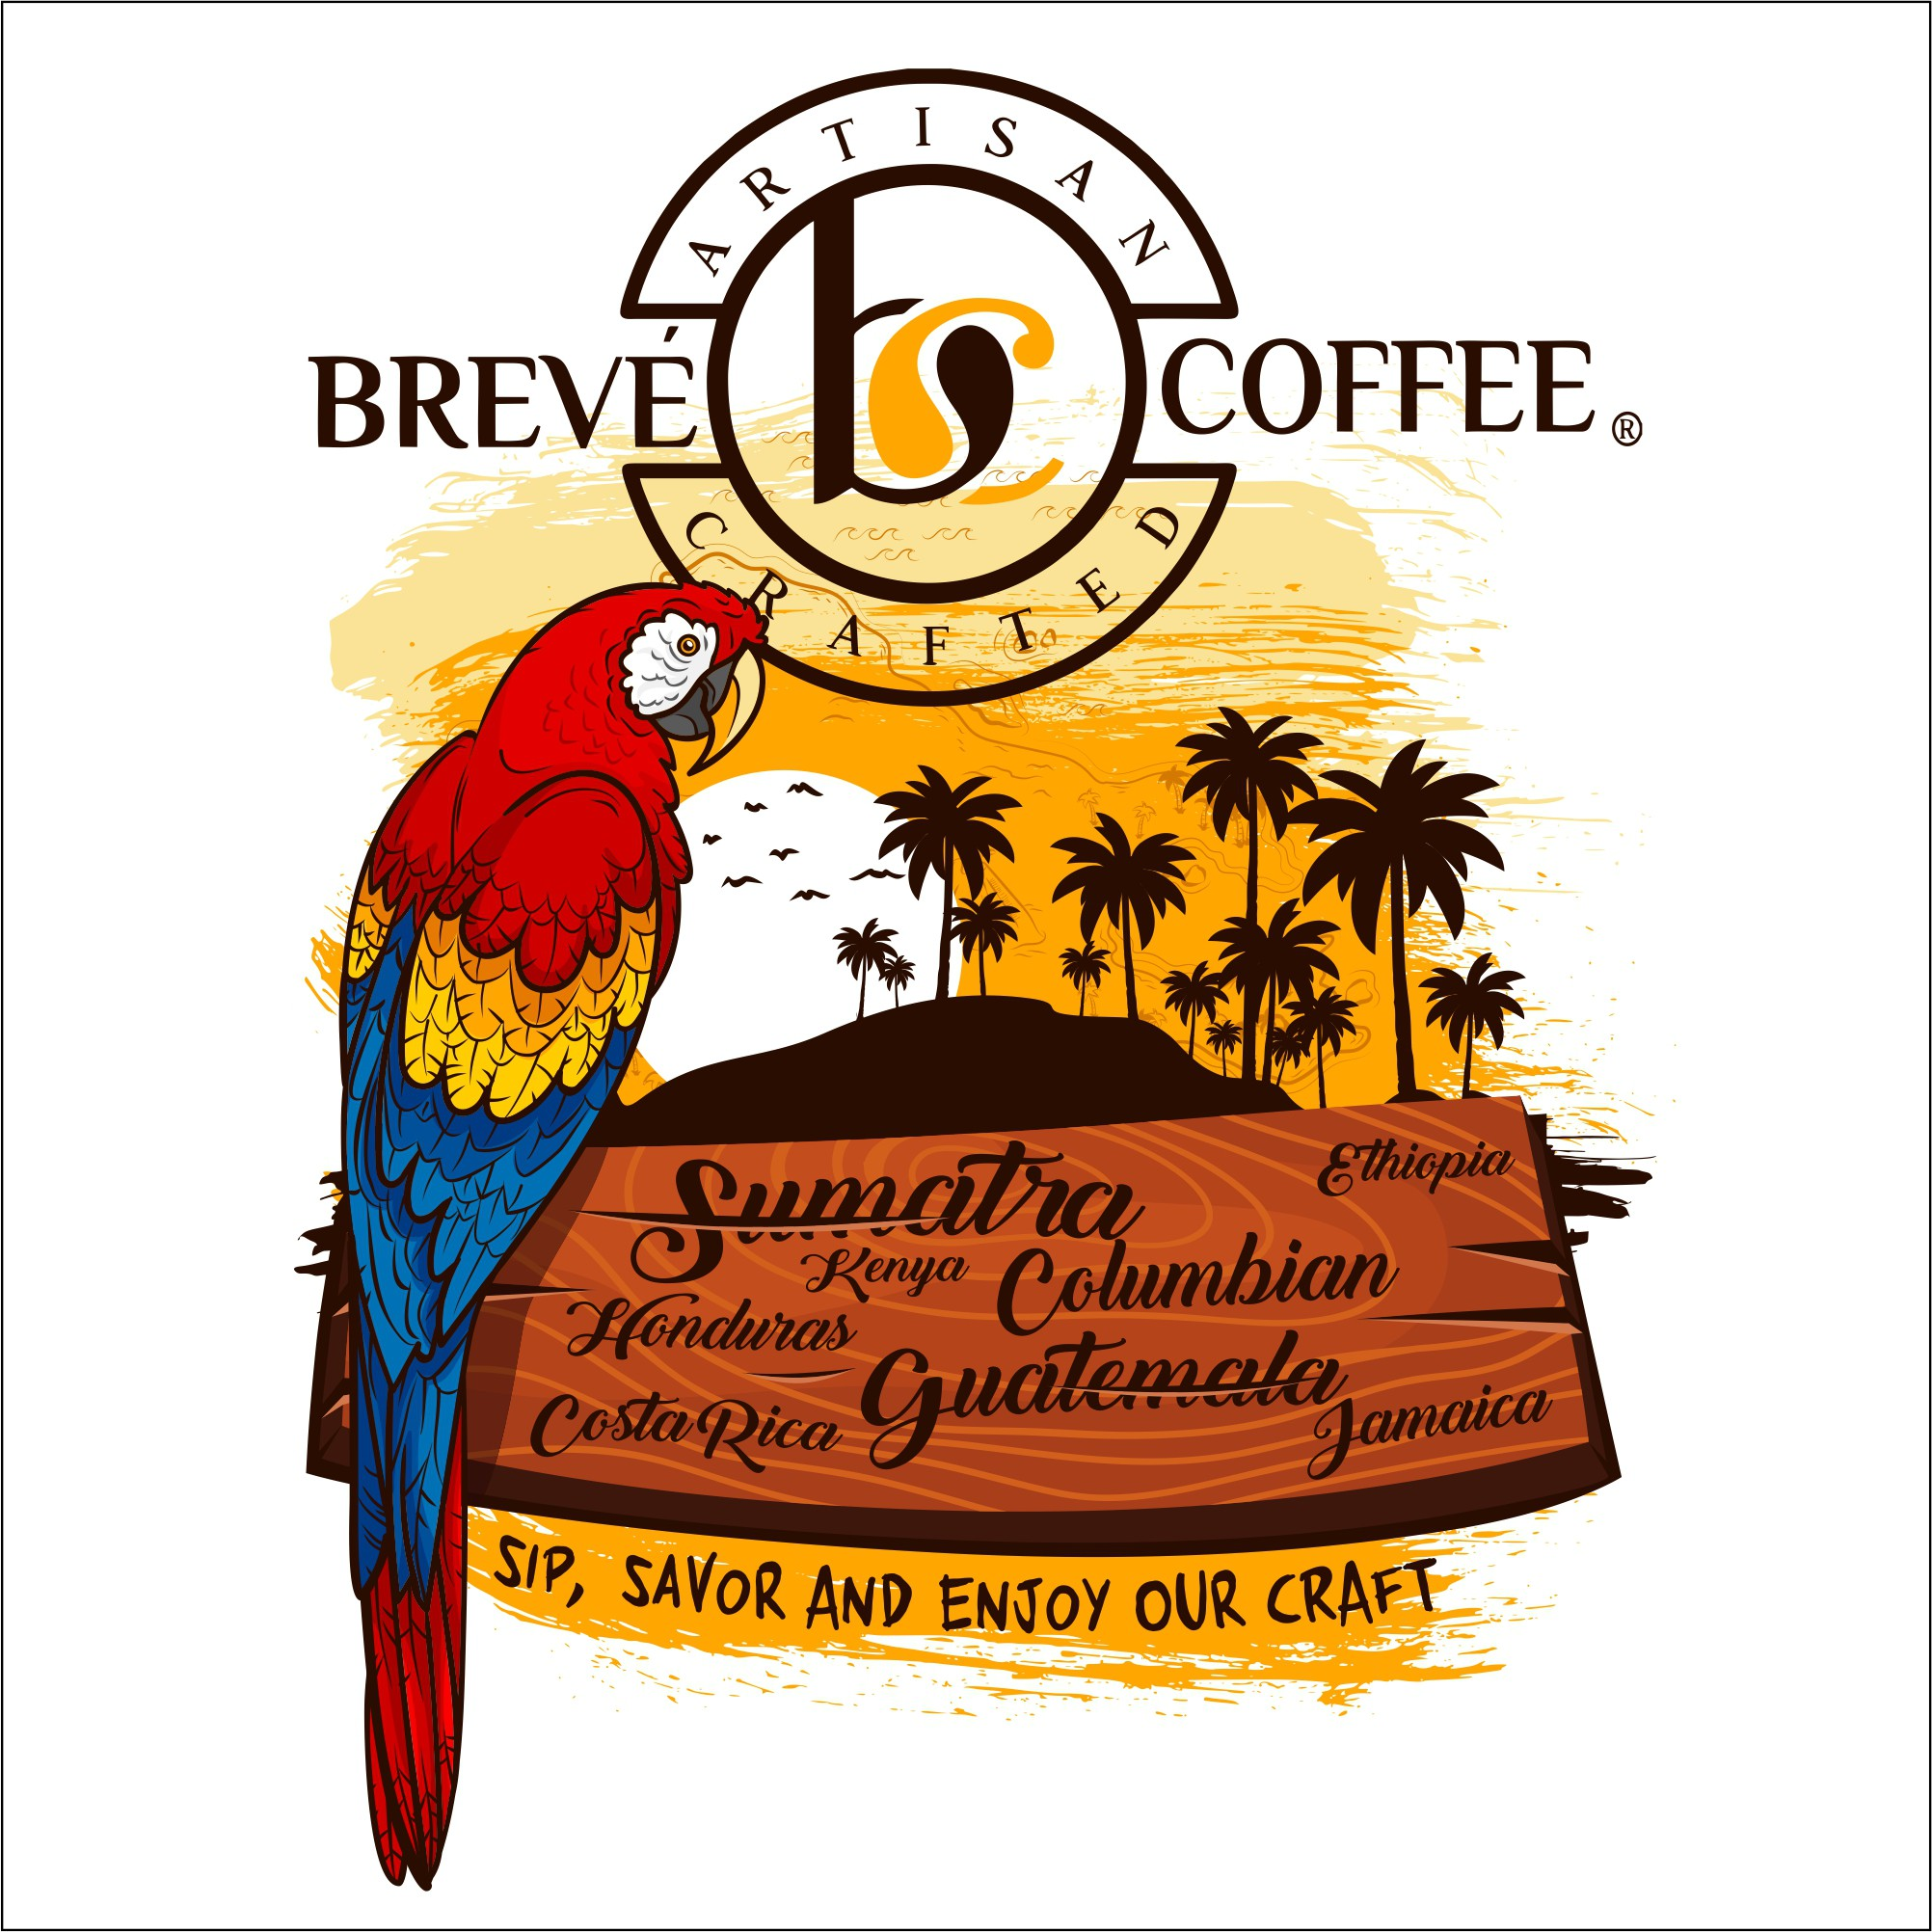 Use our Coffee Logo and Your Creativity to Design an Awesome T Shirt